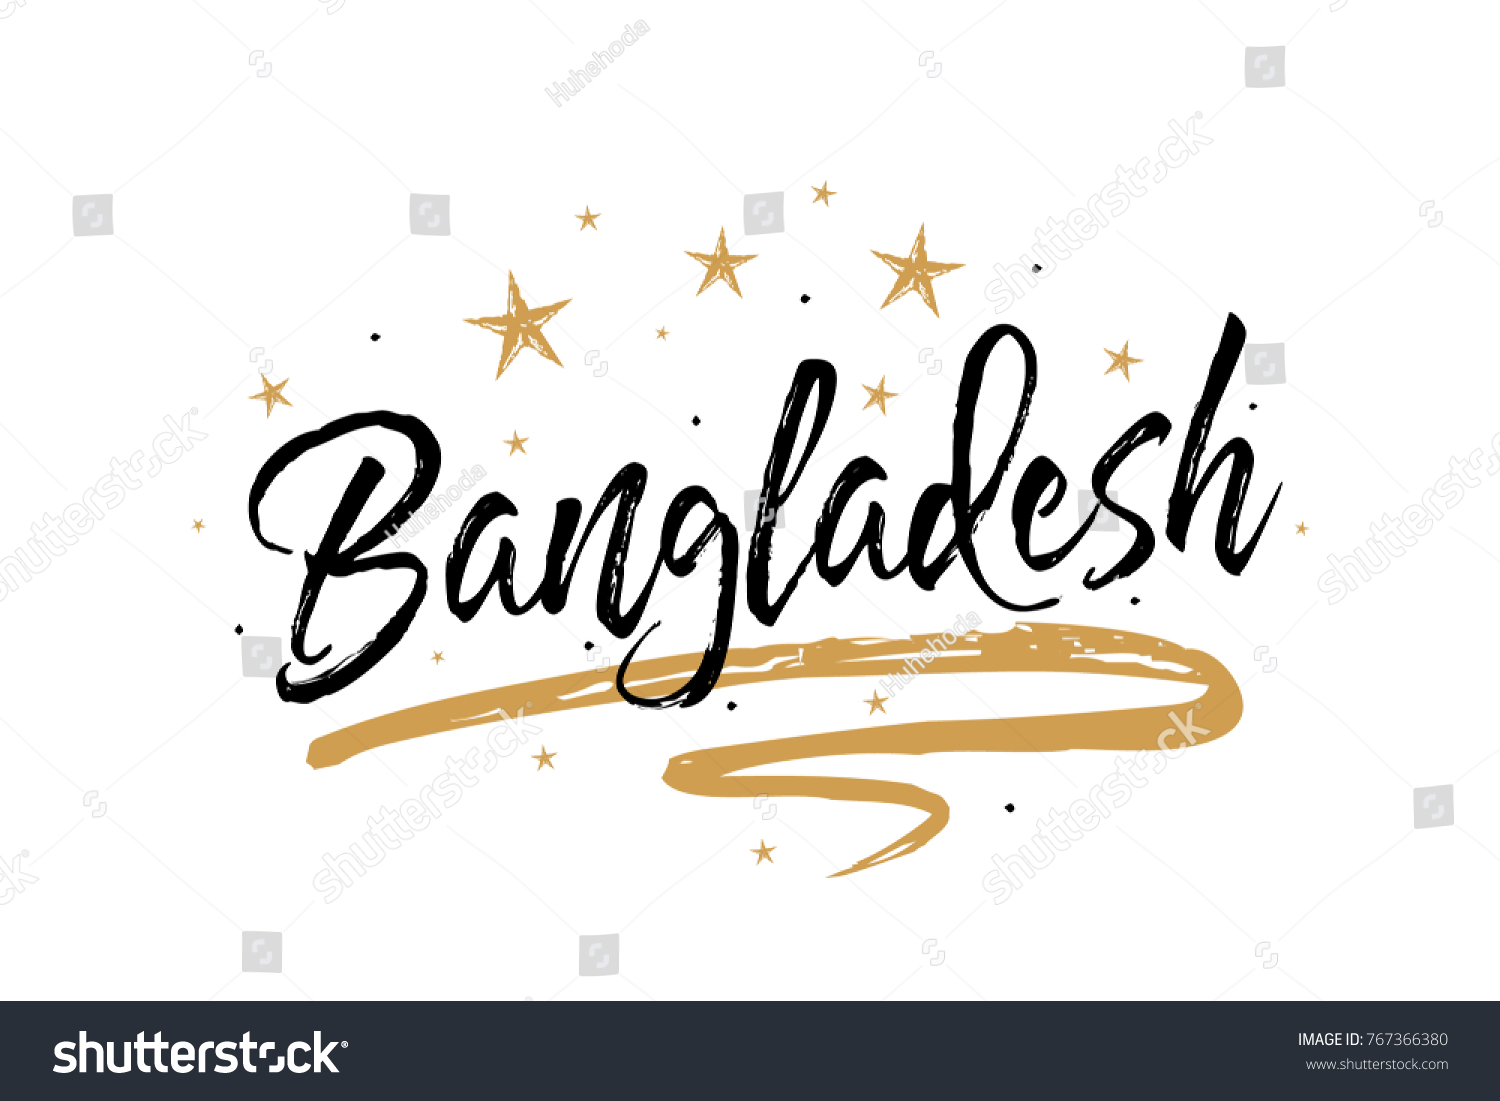 Image result for bangladesh name